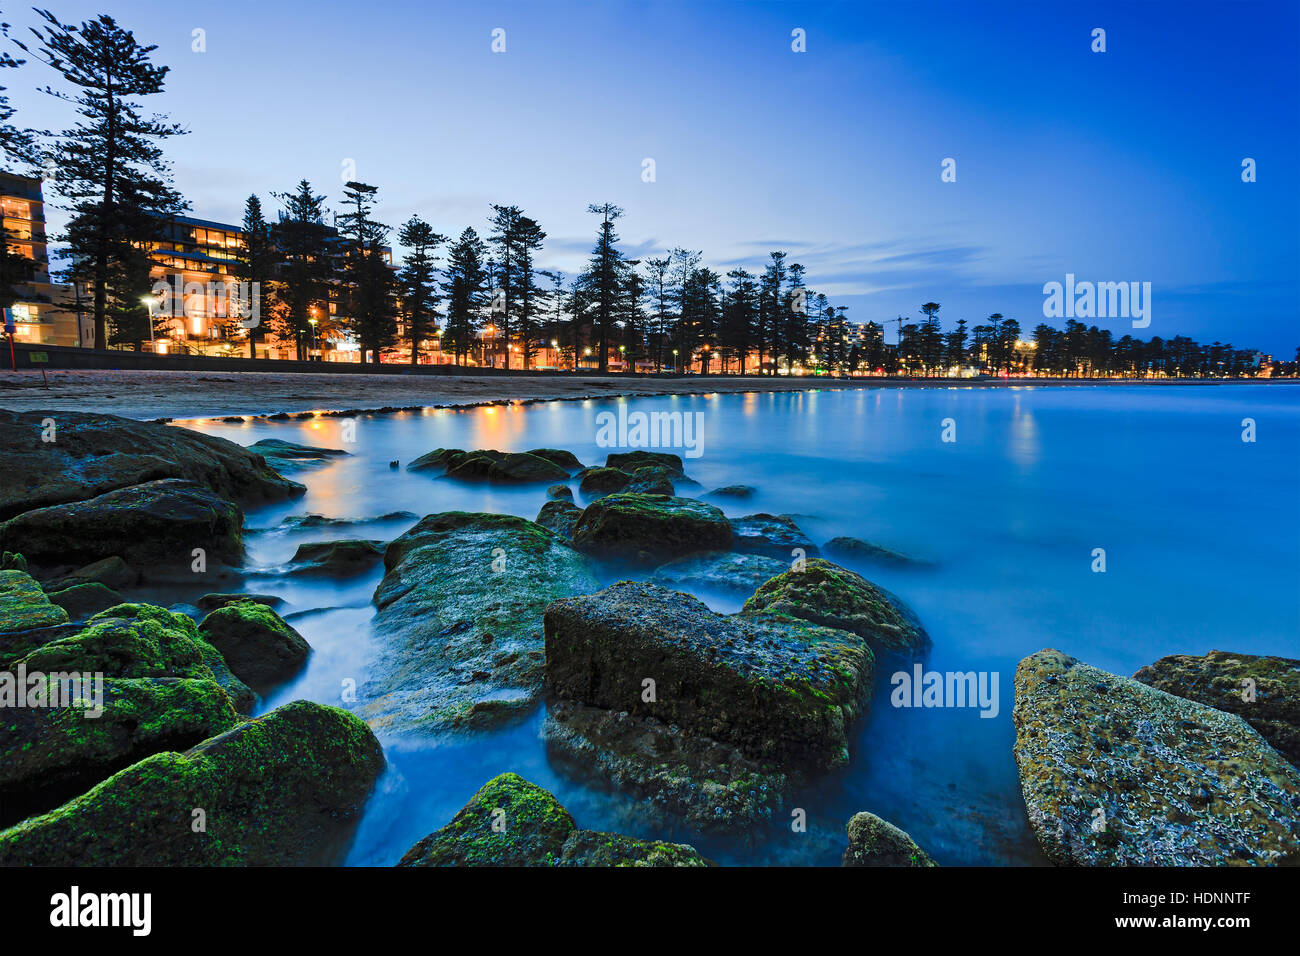 Green water plants covered boulders at Sydney northern beaches Manly beach at sunset.Popular tourist destination - Stock Image